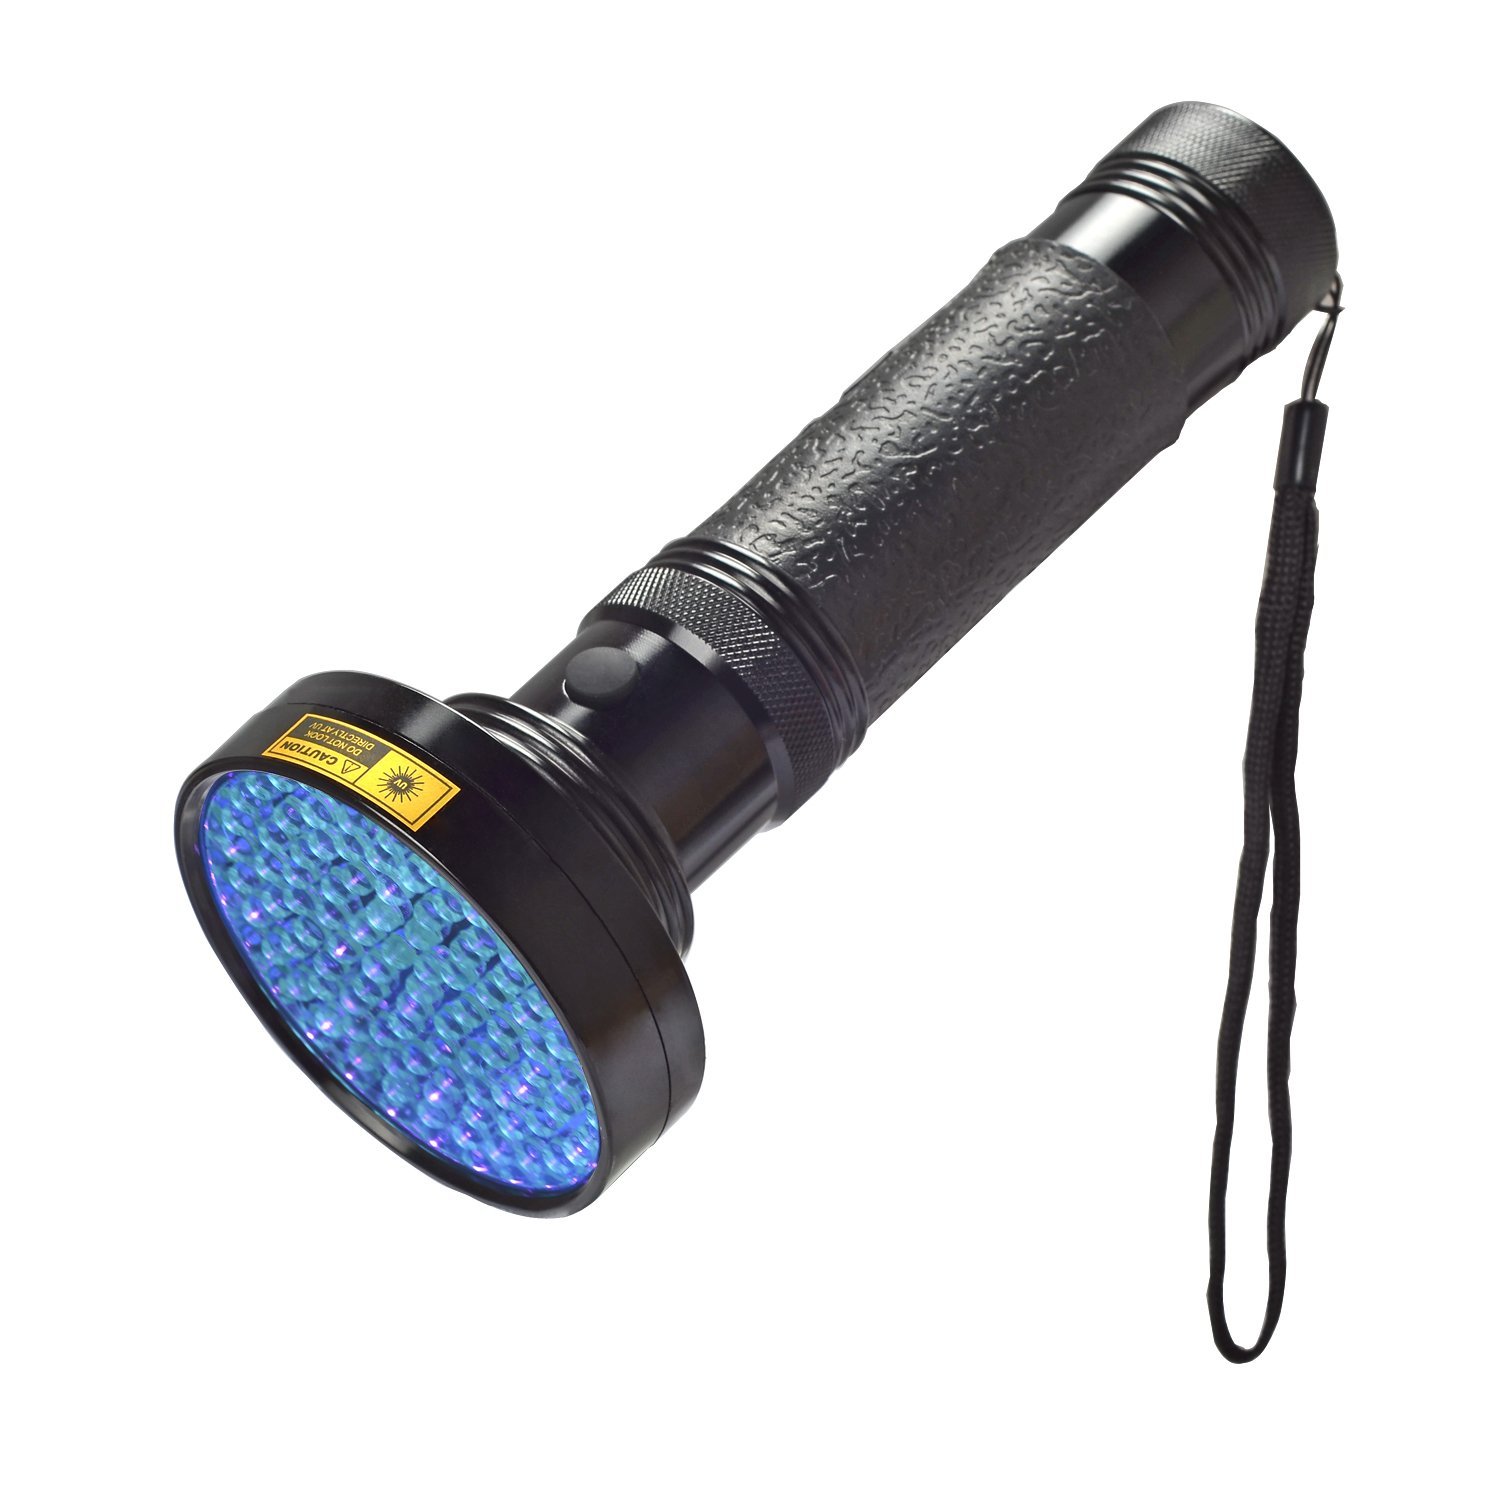 KMASHI UV Flashlight 100 LED Light Pet Urine Stain Detector Blacklight